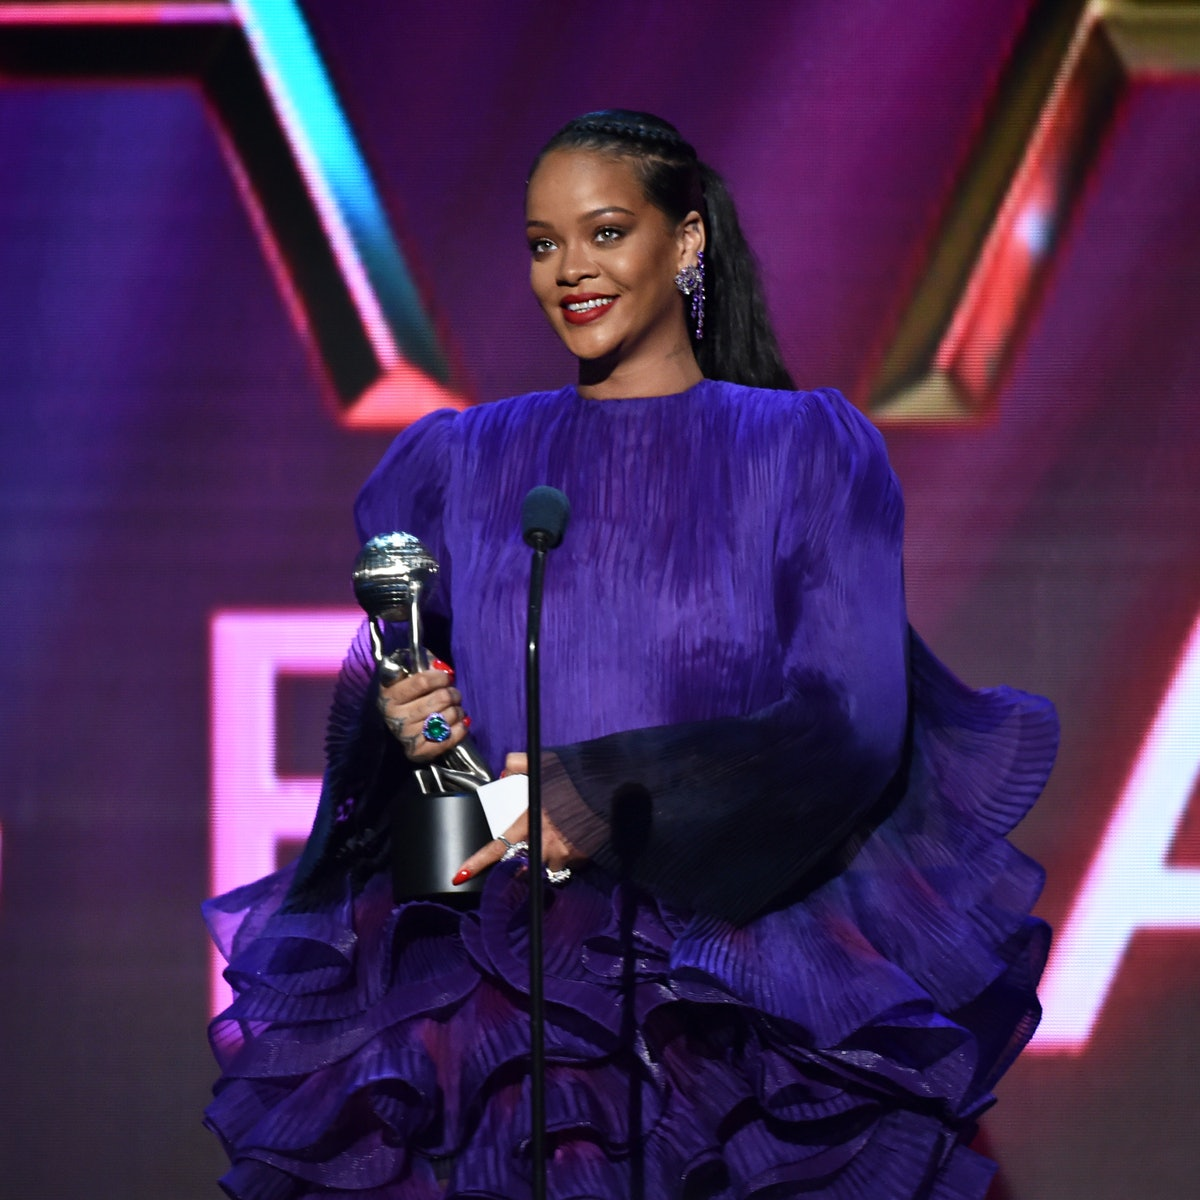 Rihanna's Speech At The 2020 NAACP Image Awards was a call for unity.